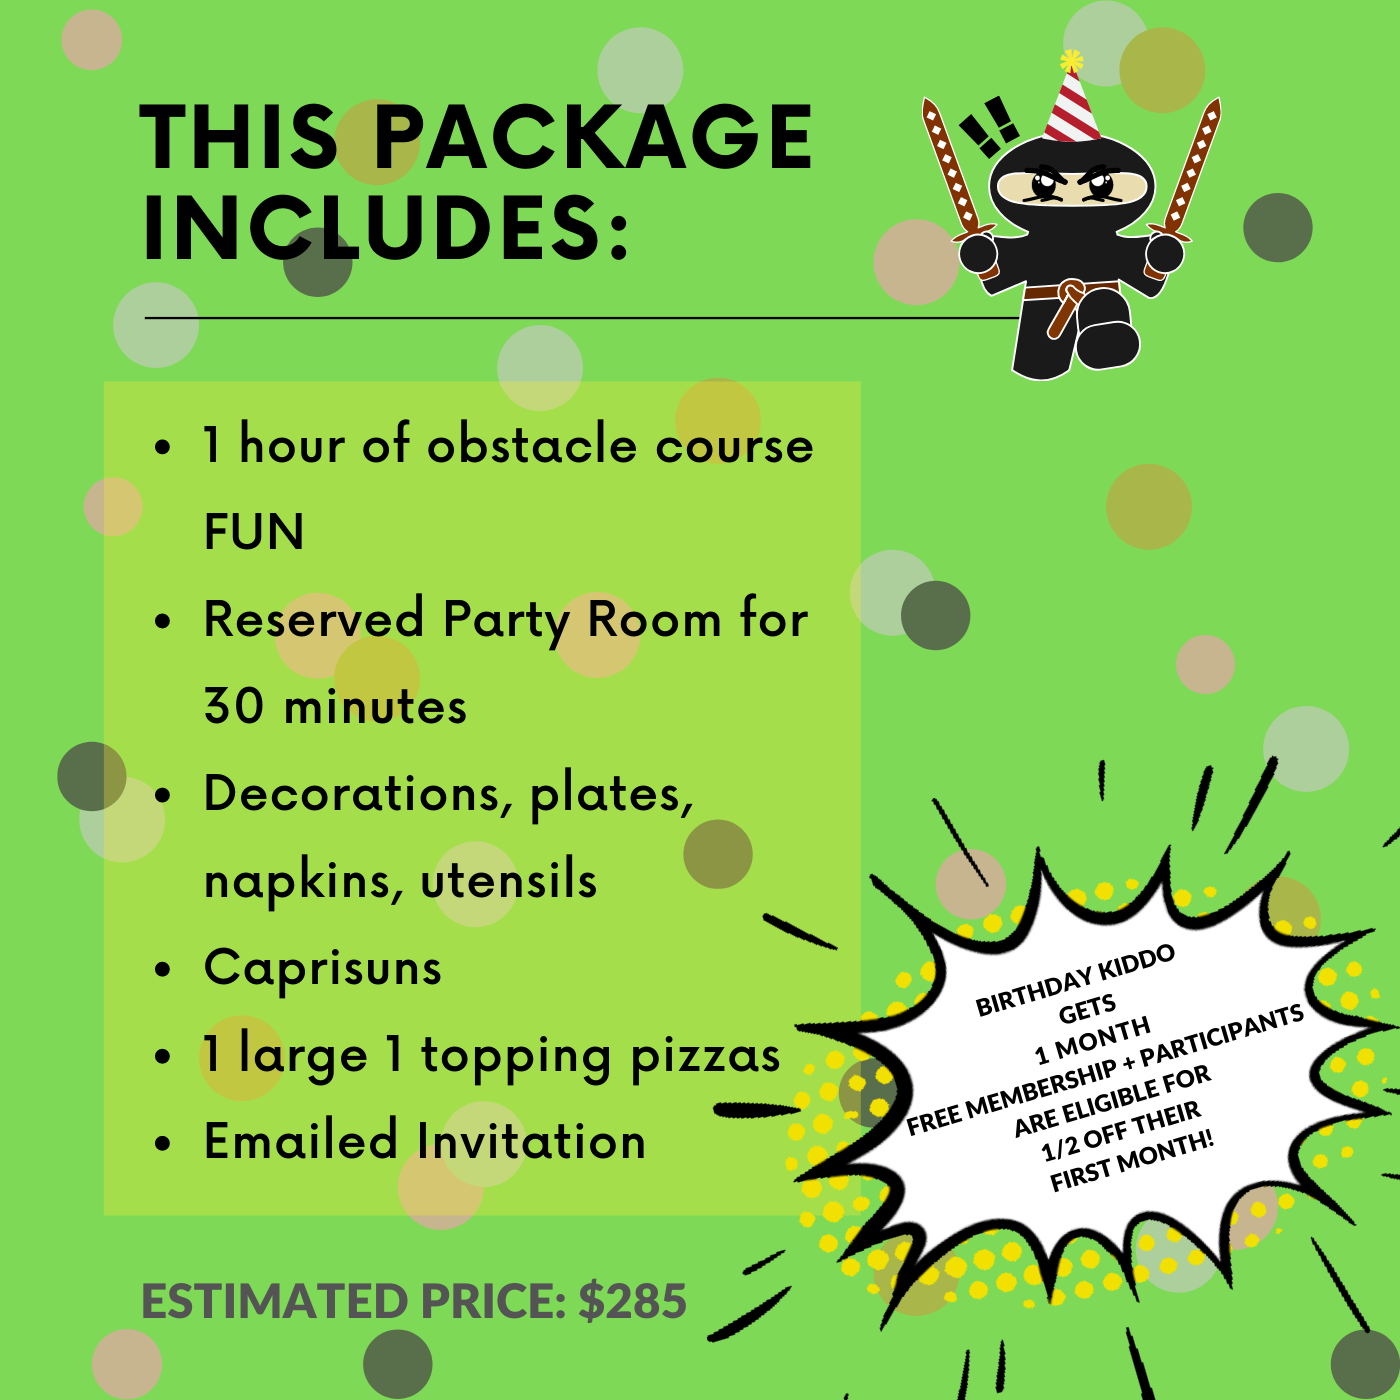 BIRTHDAY PACKAGE 1 - UP TO 8 PARTICIPANTS